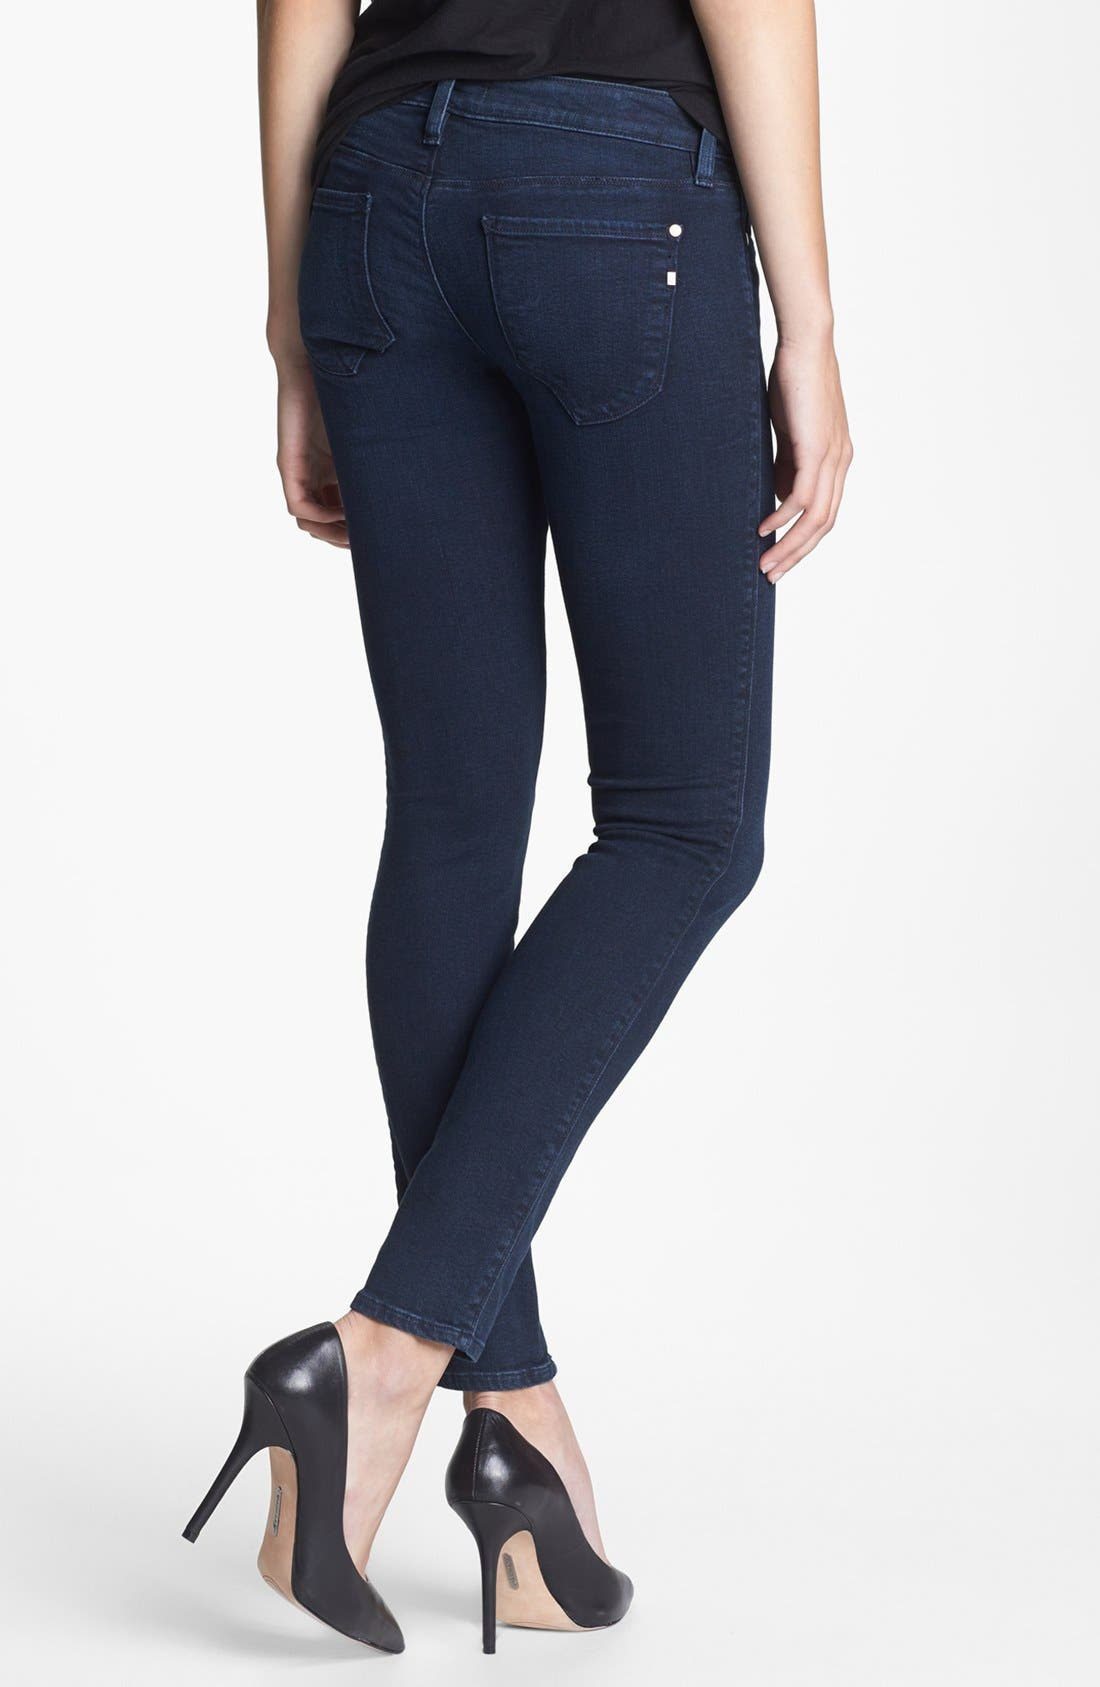 'The Shya' Cigarette Skinny Jeans,                             Alternate thumbnail 2, color,                             401